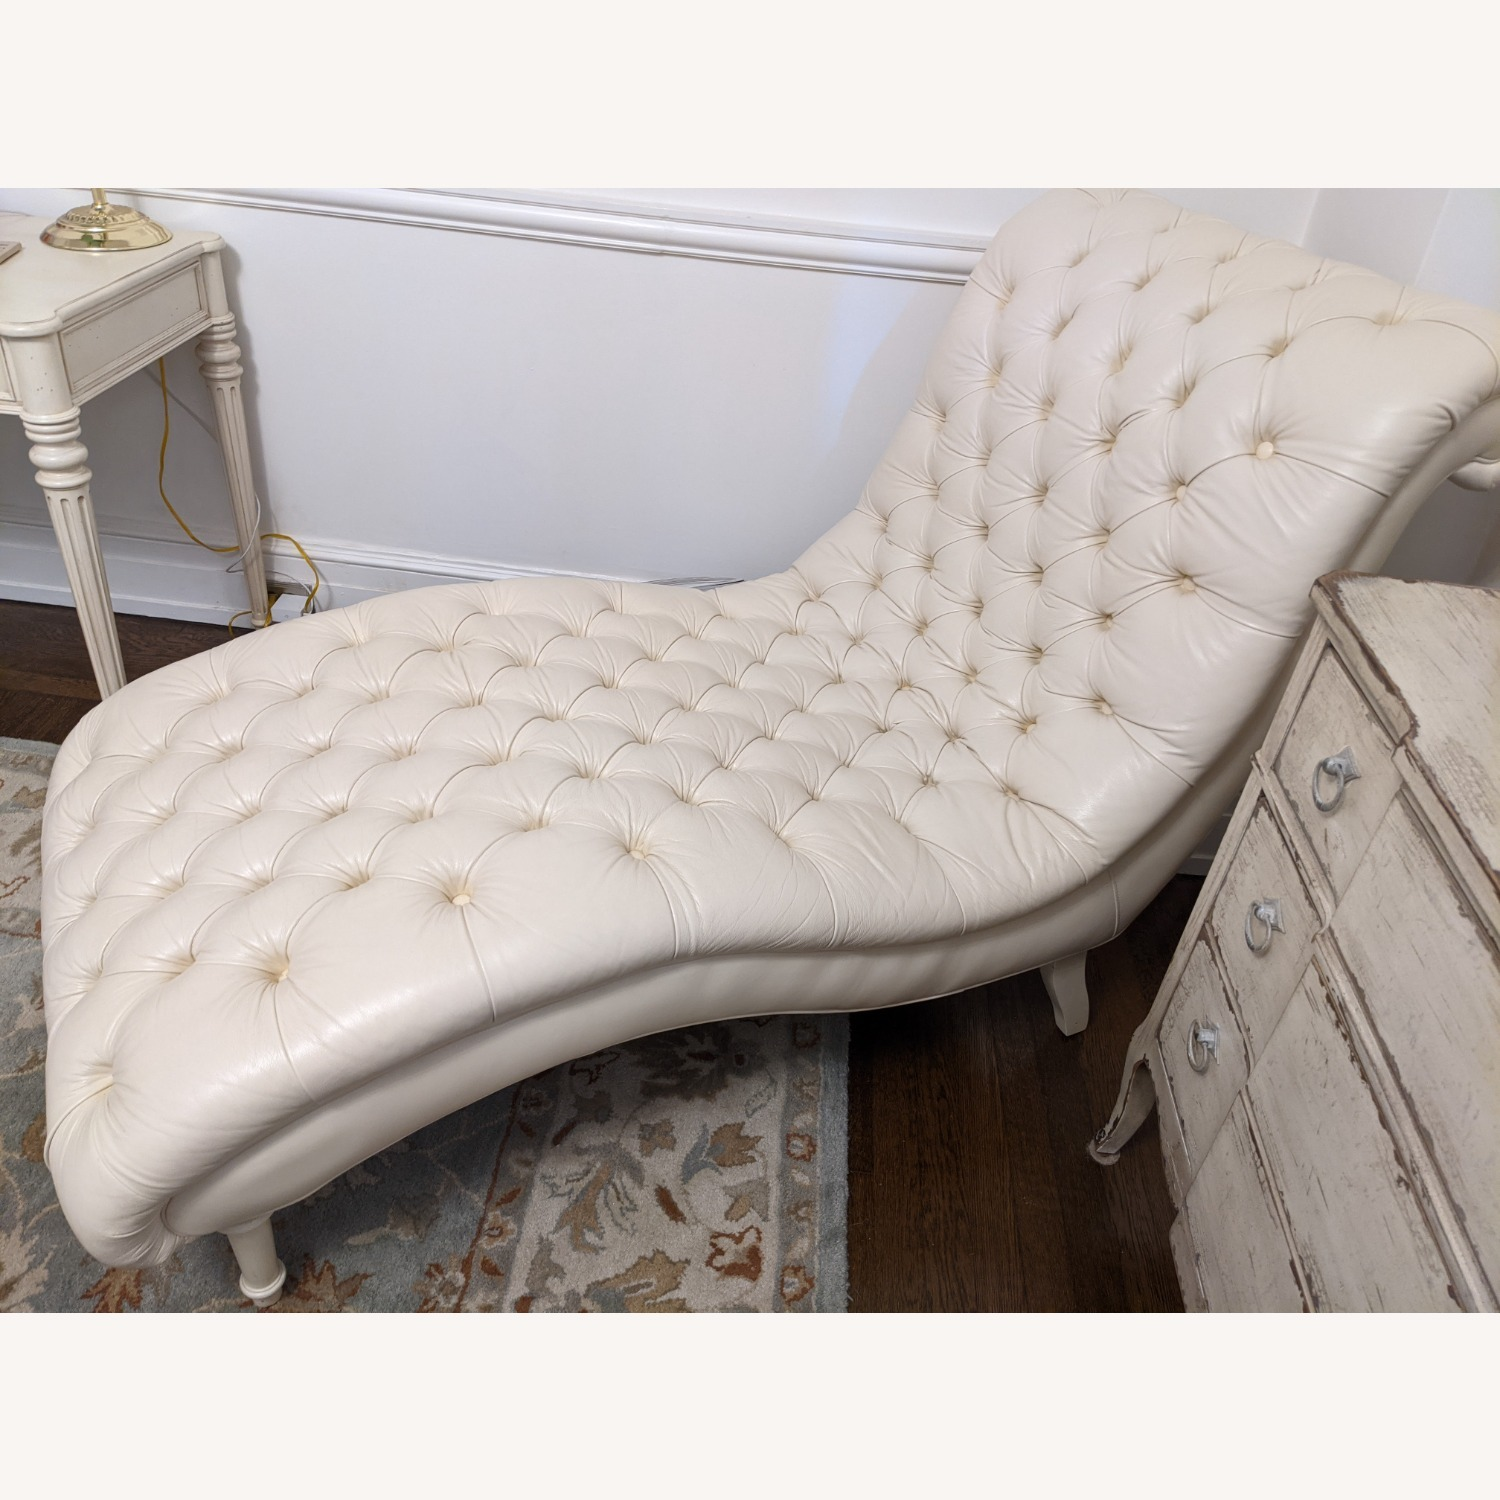 Ethan Allen Leather Chaise Long - image-13